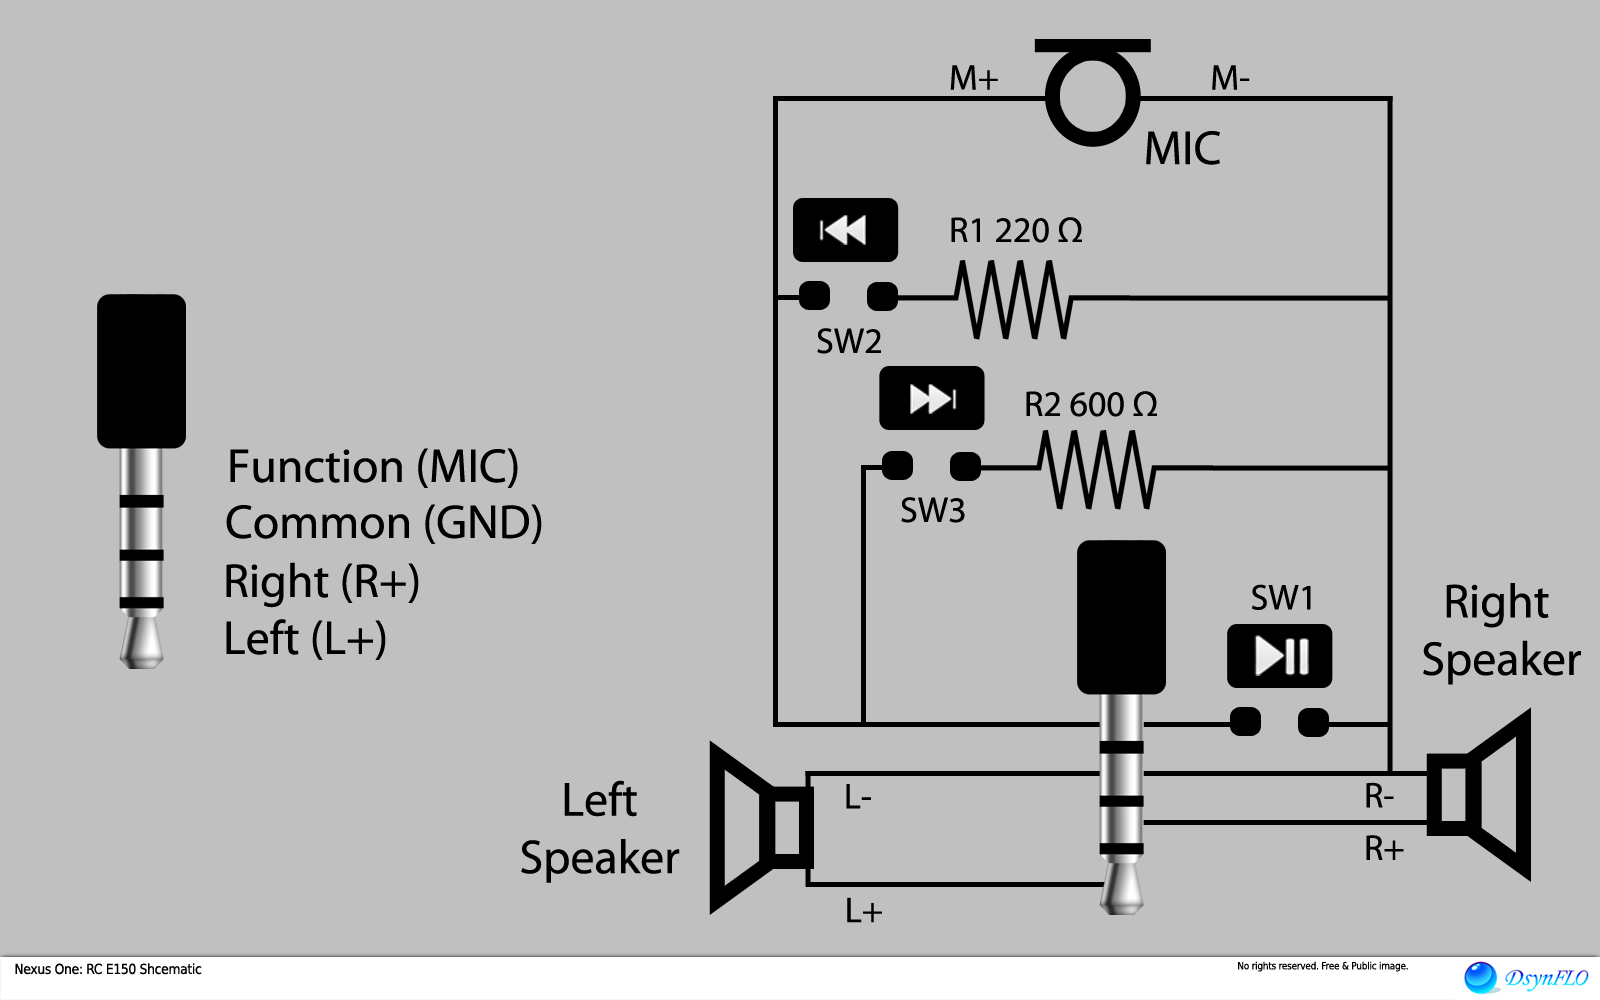 wiring+schematic?resize\=665%2C416 headphone with mic wiring diagram 3 5mm jack wiring diagram usb wire diagram and function at webbmarketing.co